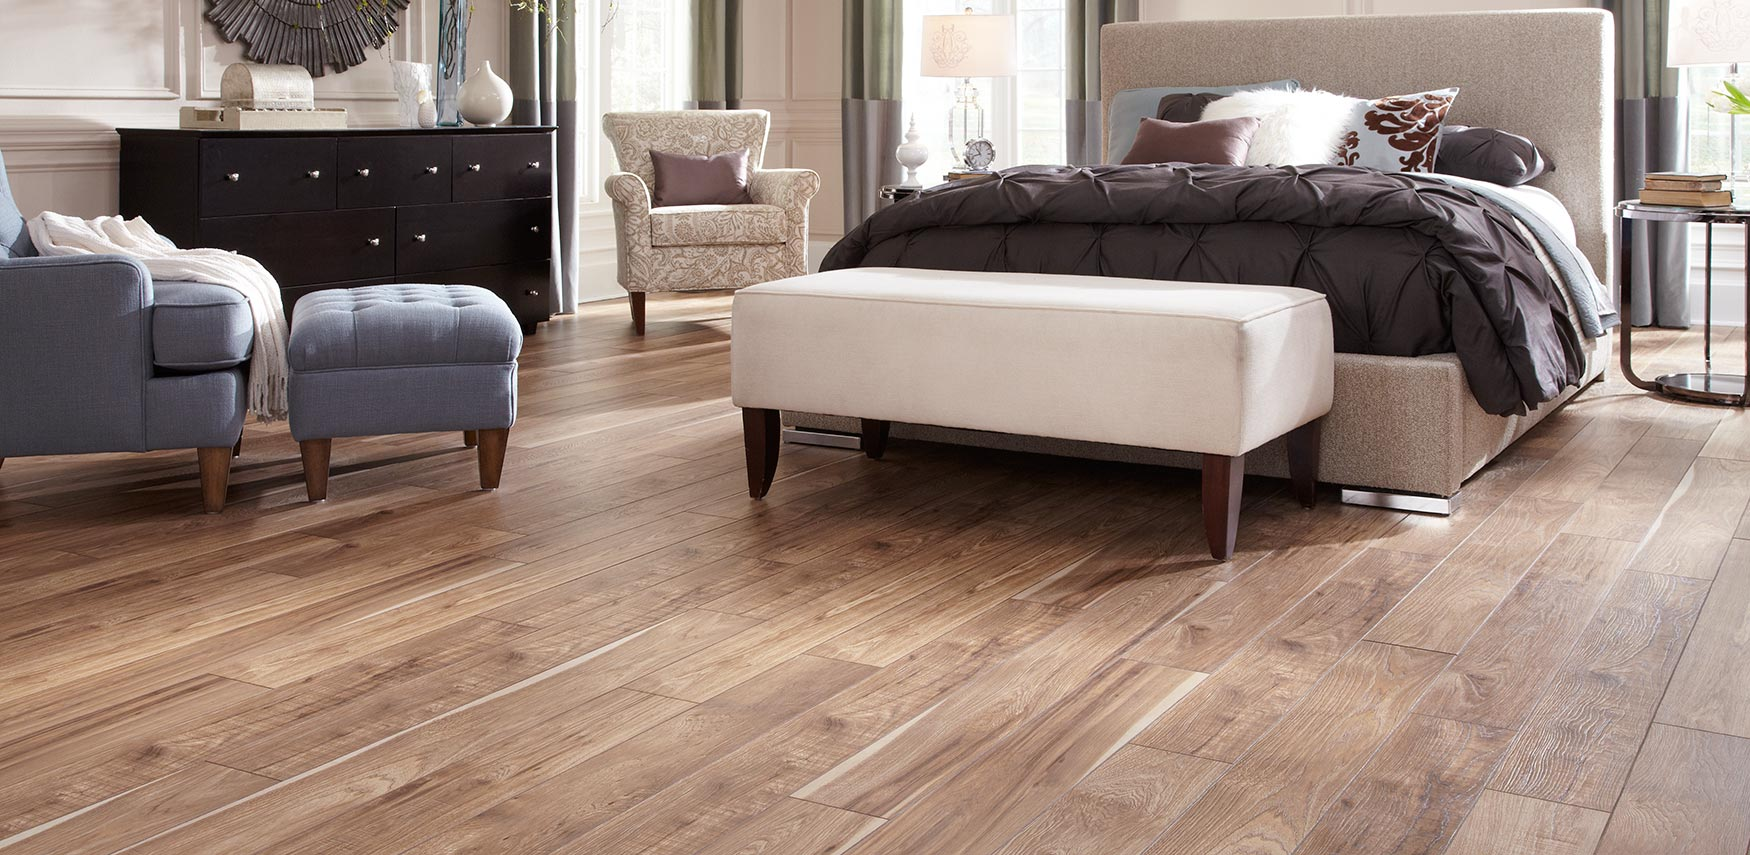 Mannington flooring resilient laminate hardwood for Luxury laminate